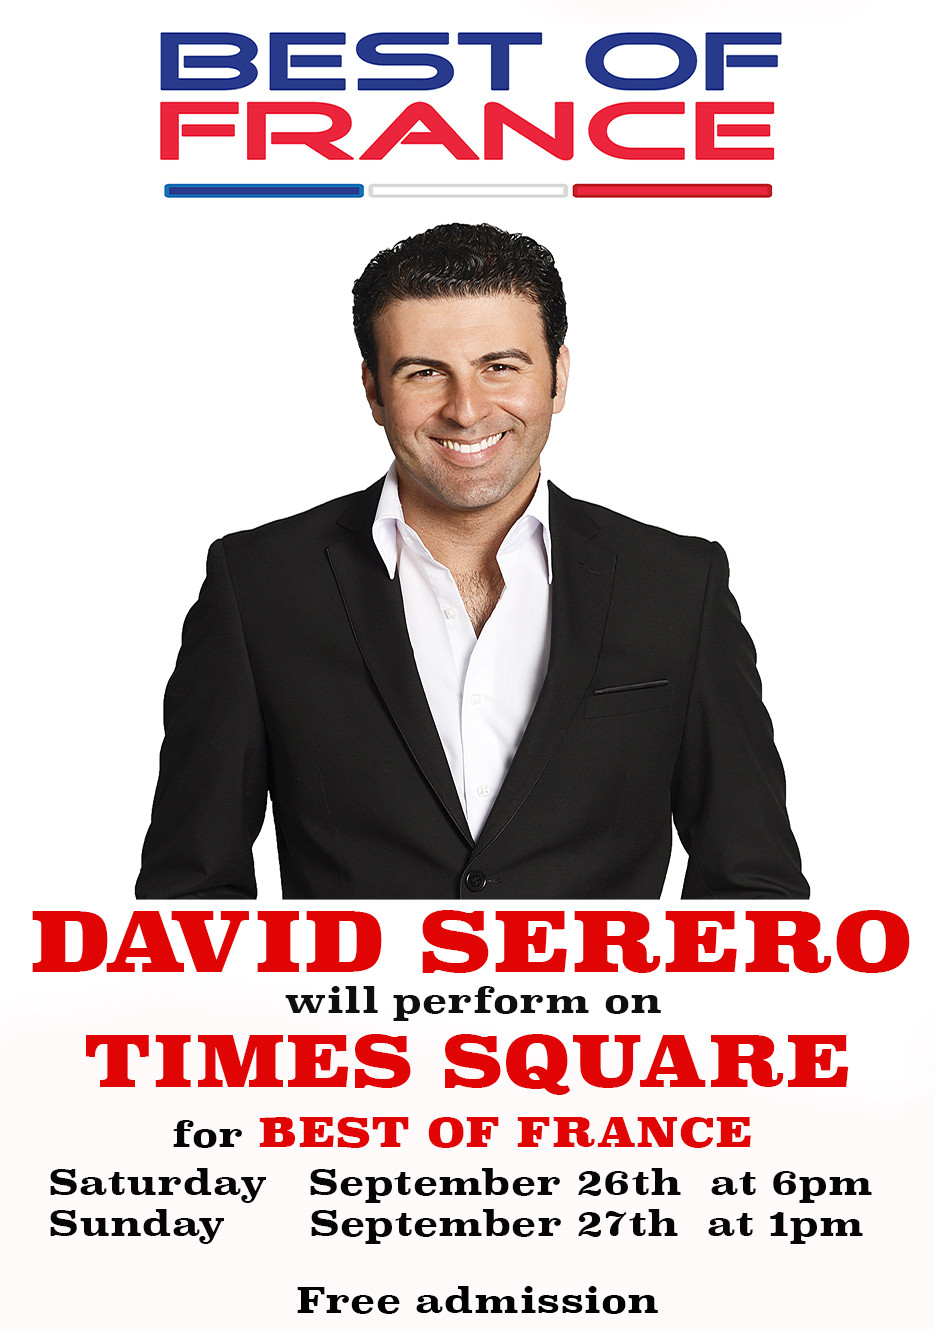 David Serero performs on Times Square for Best of France